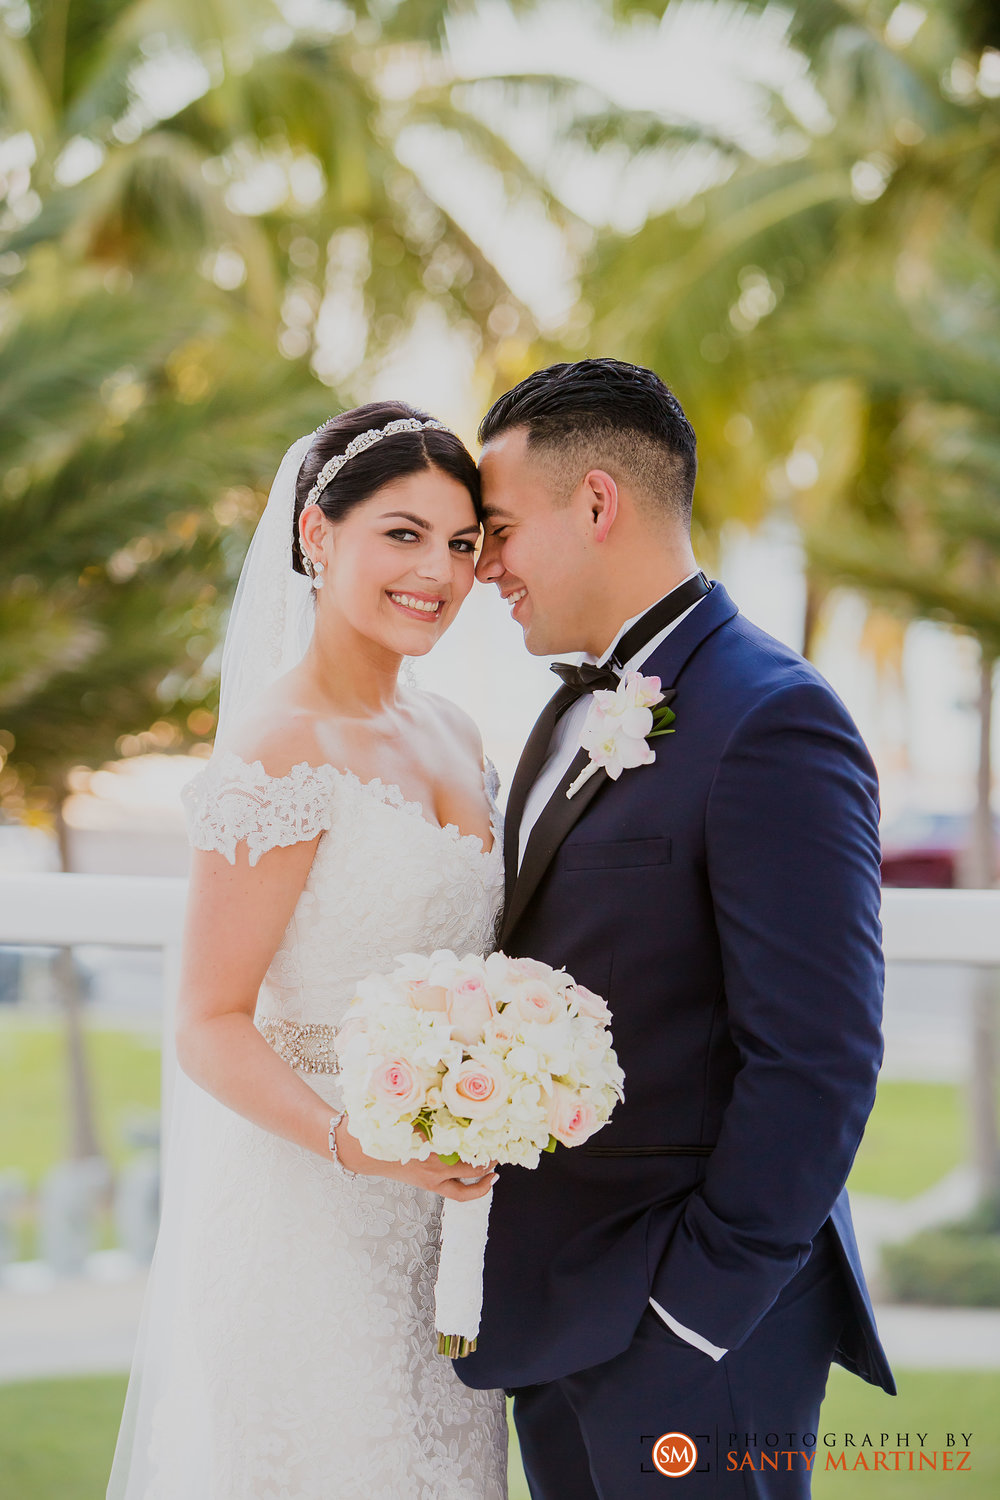 Miami Wedding Photographer - Santy Martinez-24.jpg